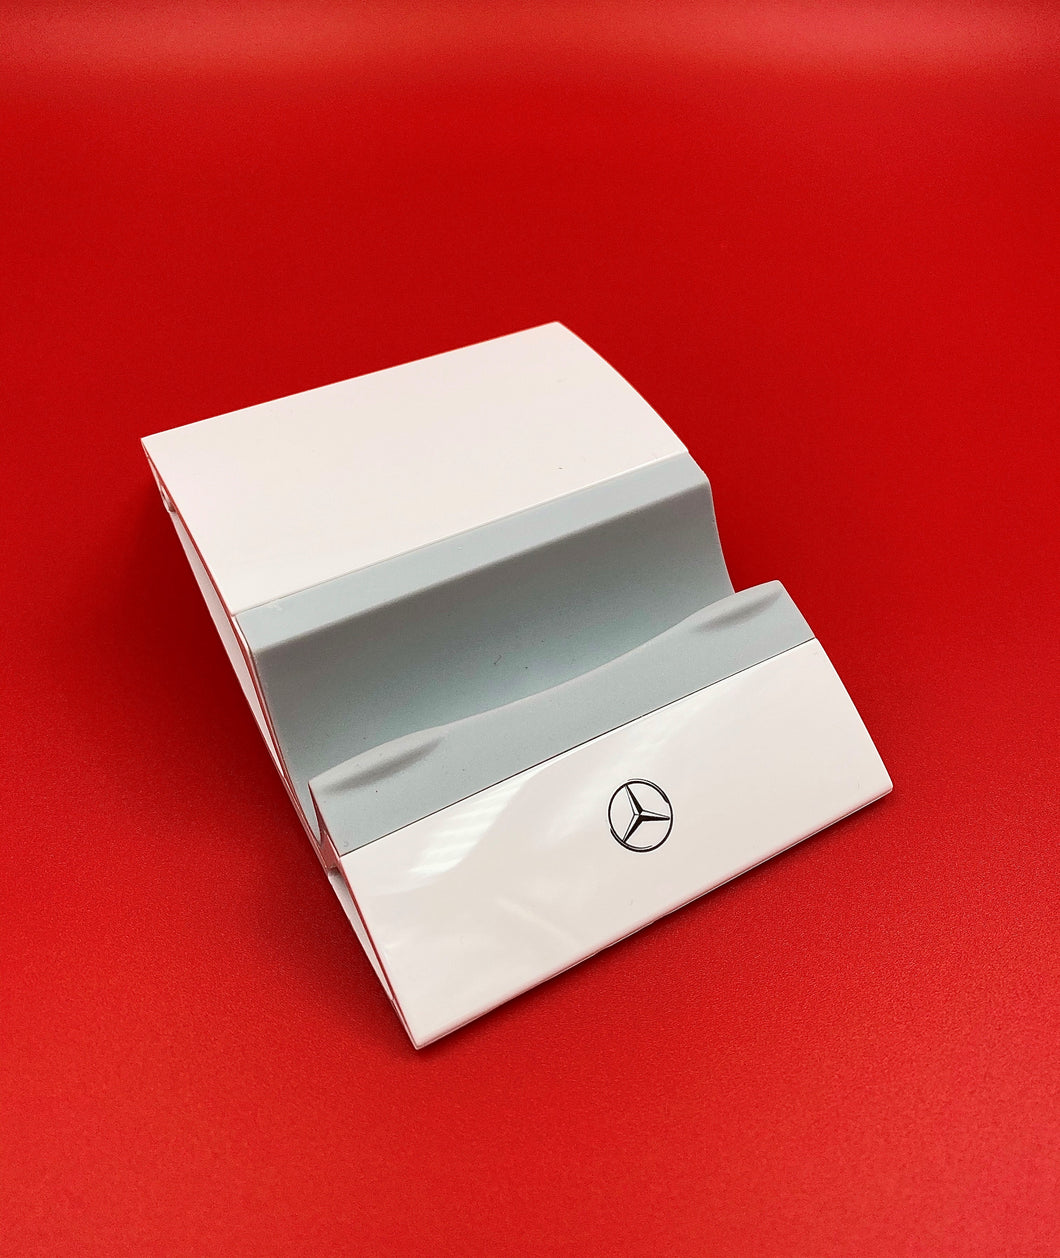 Mercedes-Benz Glossy White Tablet & iPhone stand